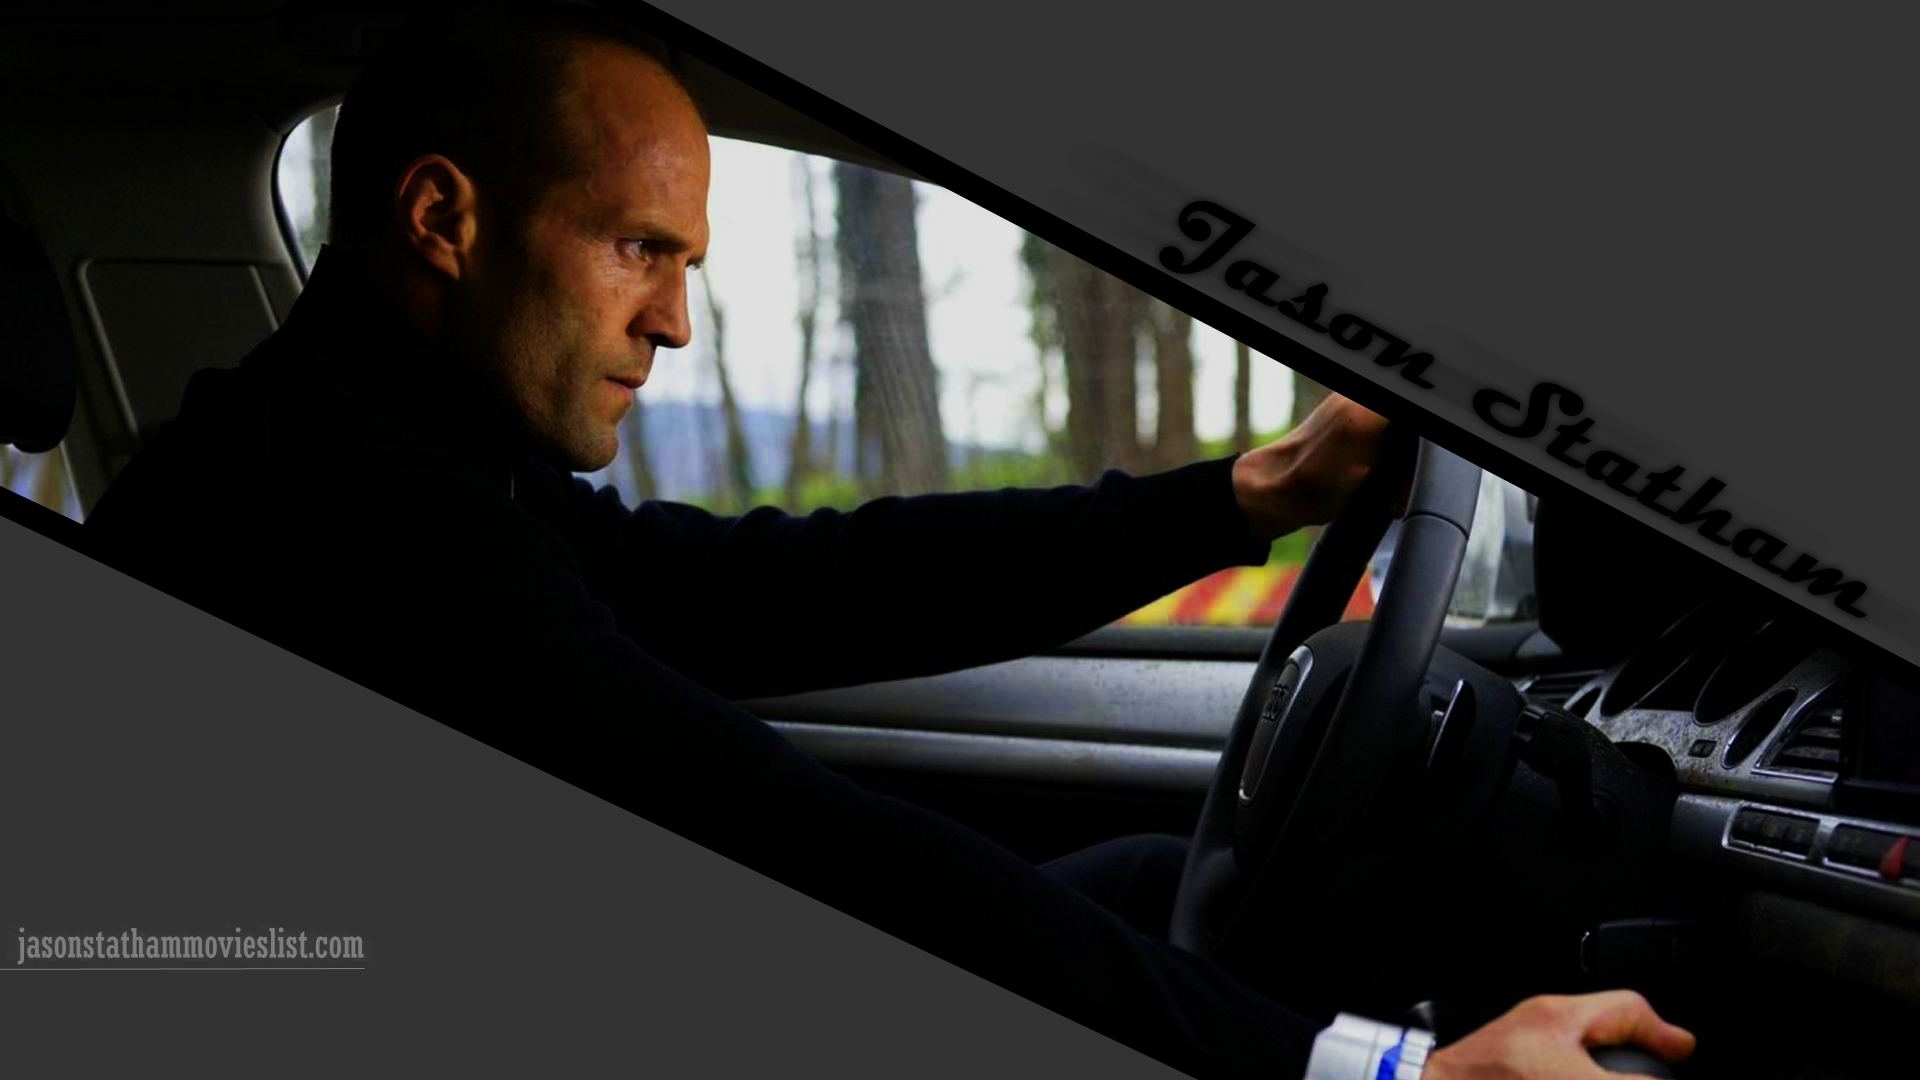 Jason Statham Driving HD Wallpaper